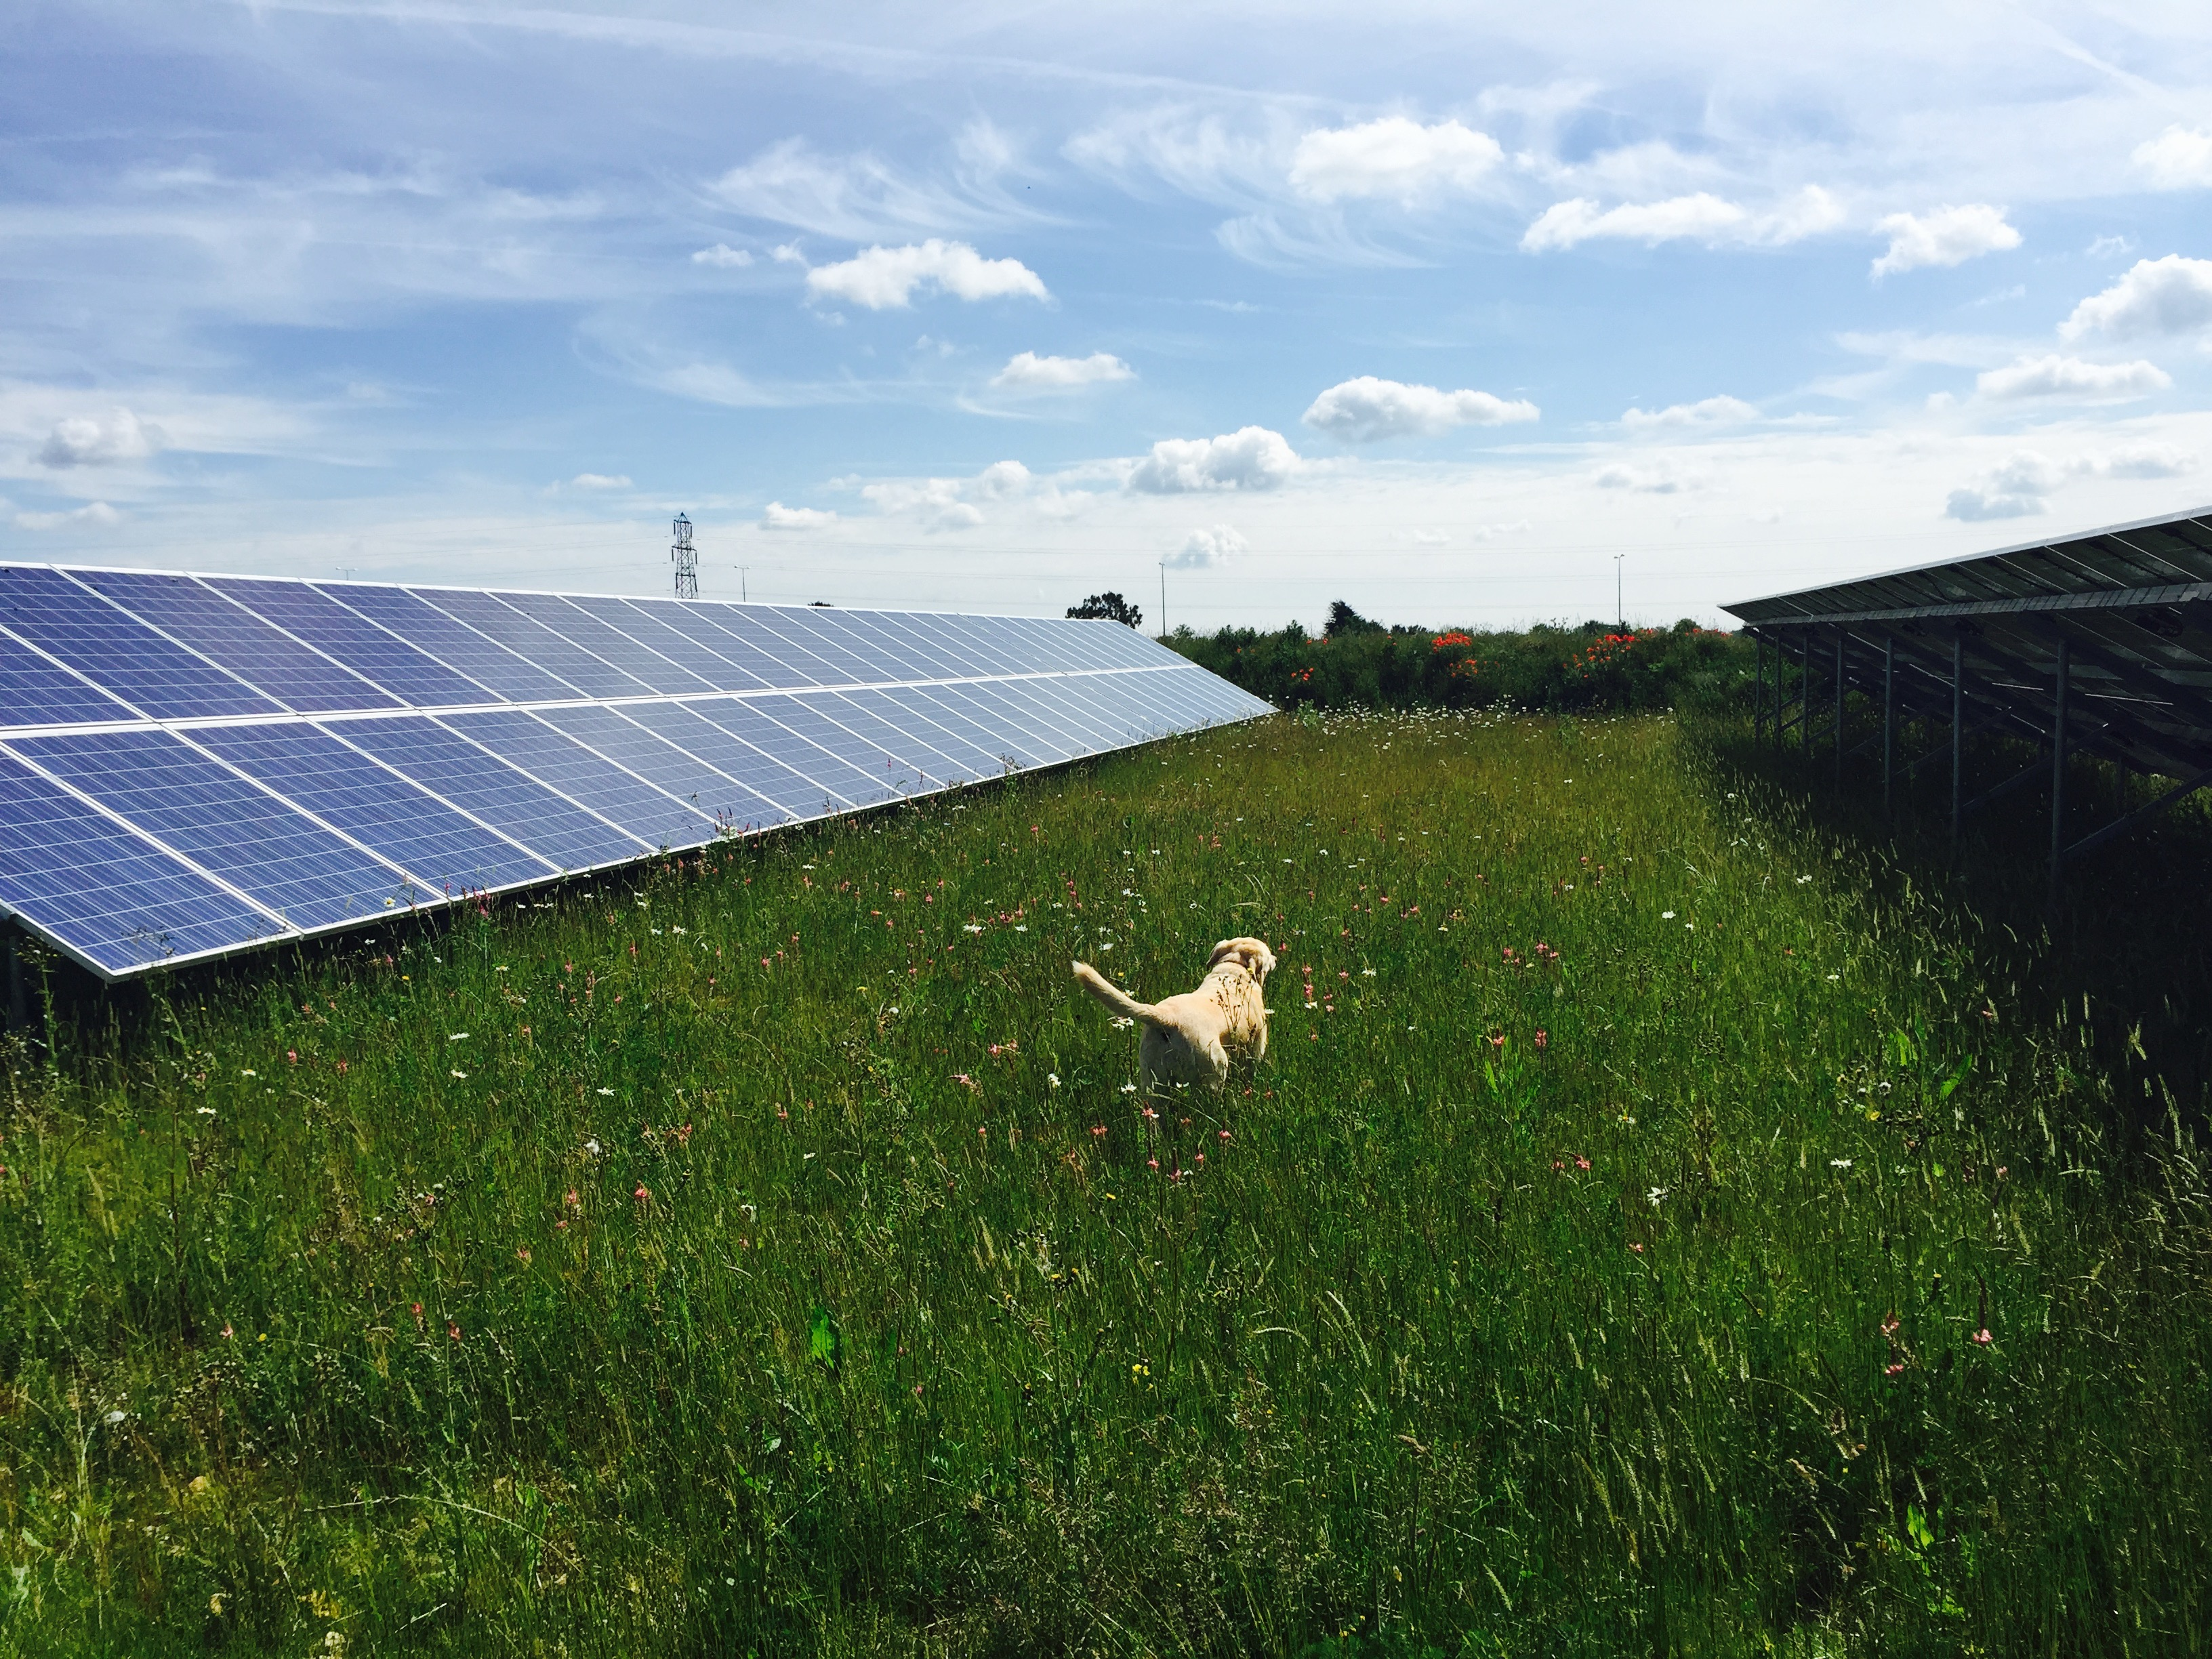 polly-the-lab-at-solar-install